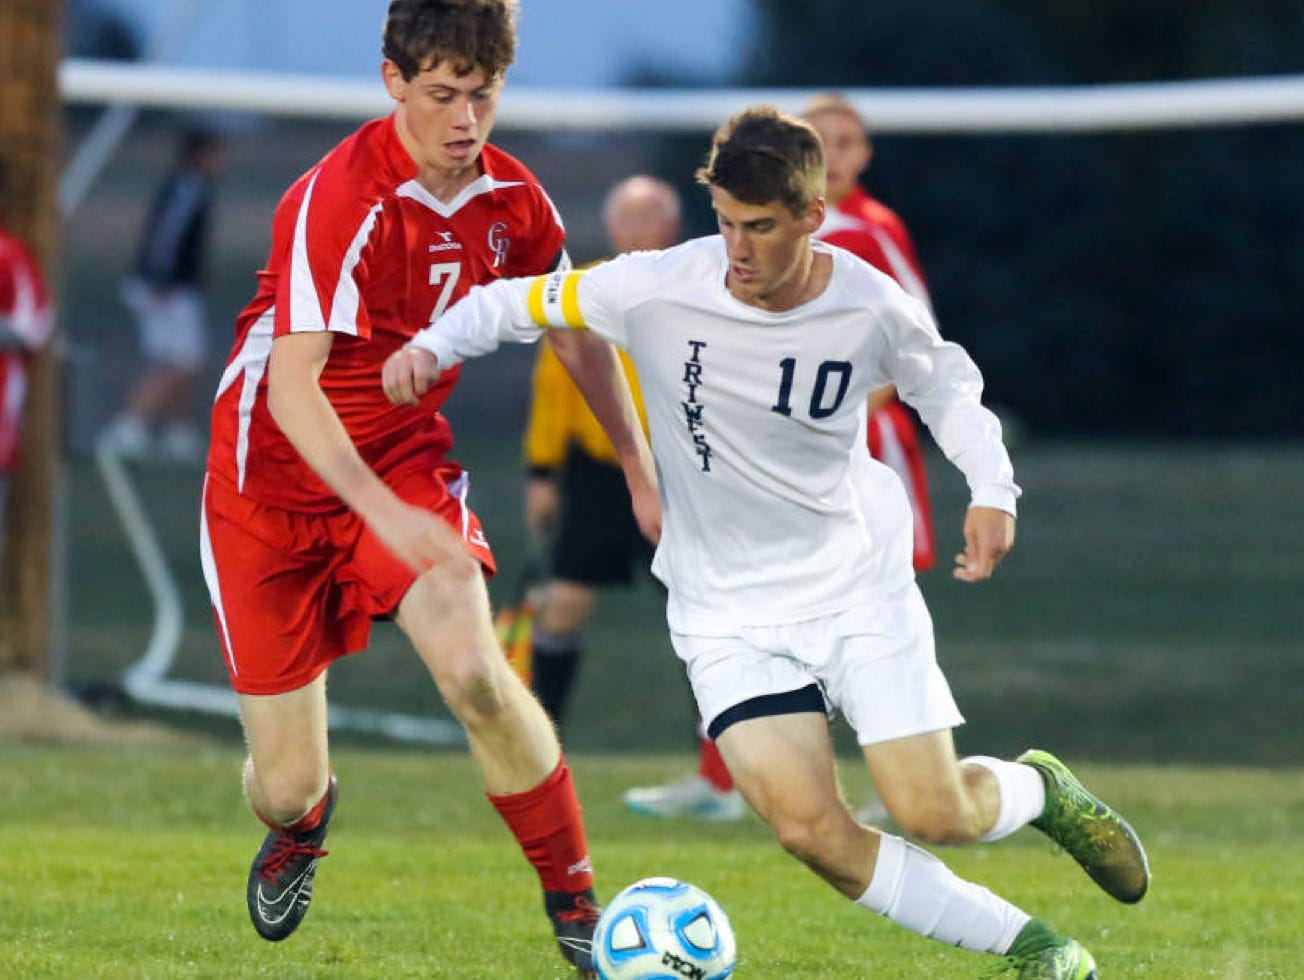 Cardinal Ritter's Keith Owen tries to get the ball from a Tri-West player.